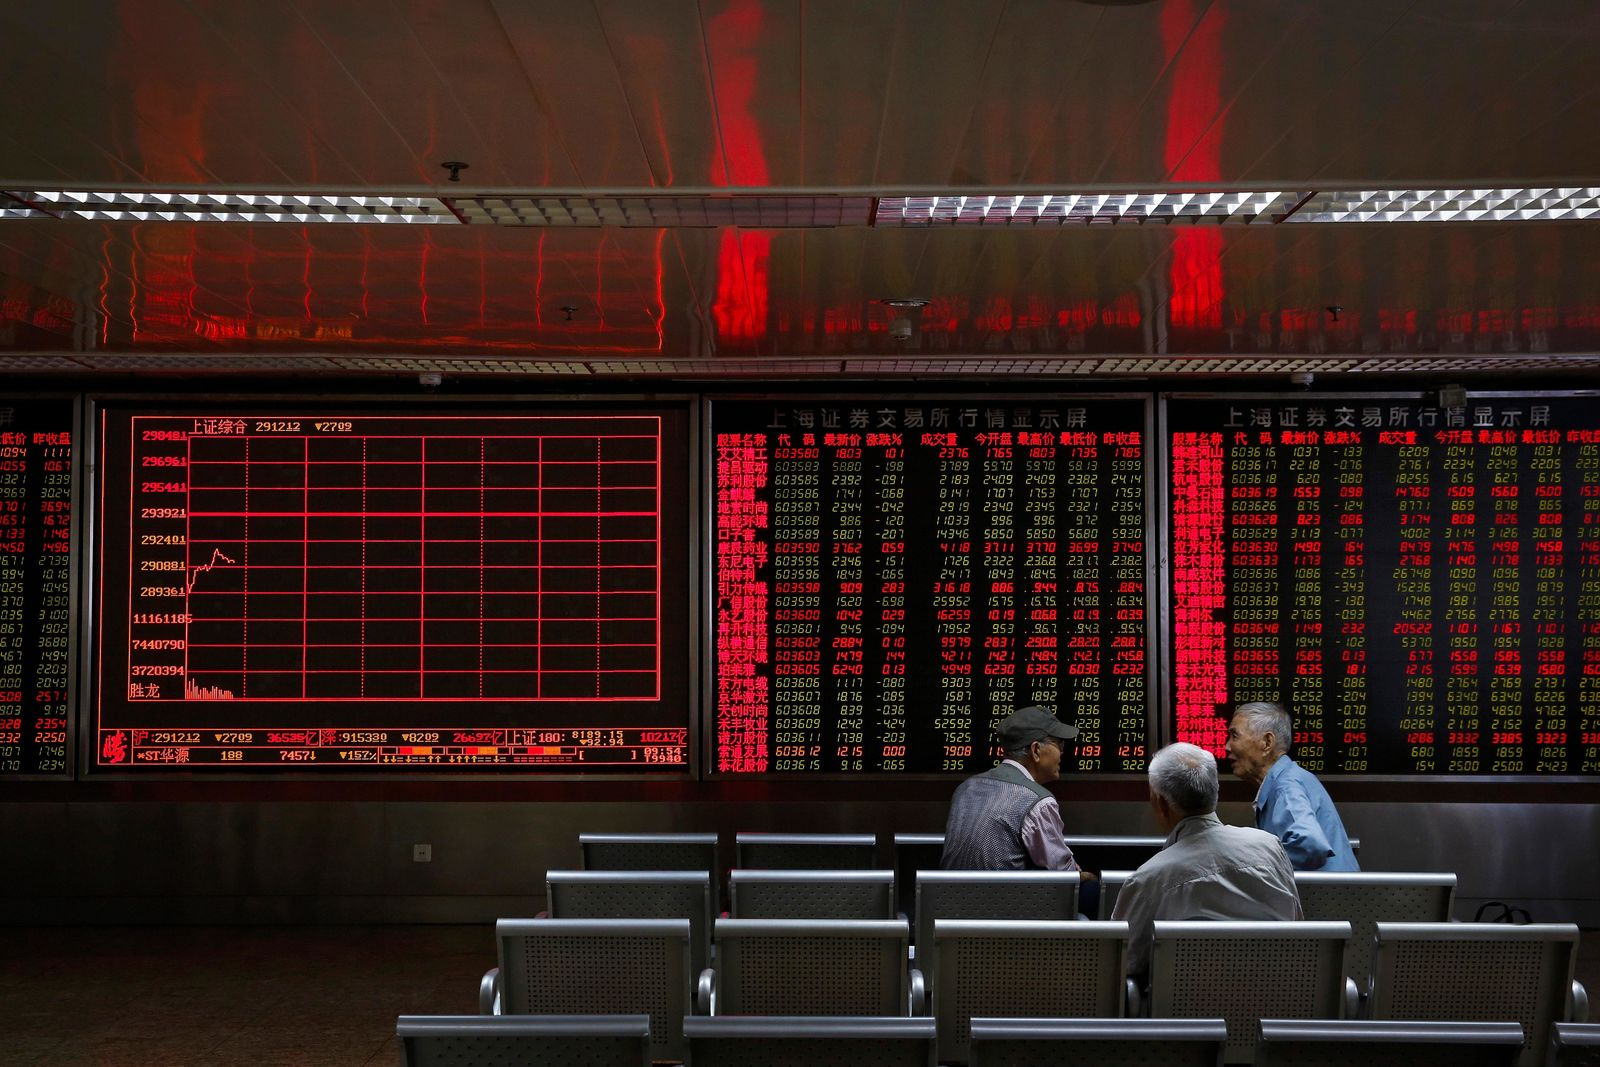 Chinese investors chat as they monitor stock prices at a brokerage house in Beijing, Monday, May 13, 2019. Shares were mostly lower in Asia on Monday after trade talks between the U.S. and China ended Friday without an agreement. (AP Photo/Andy Wong)